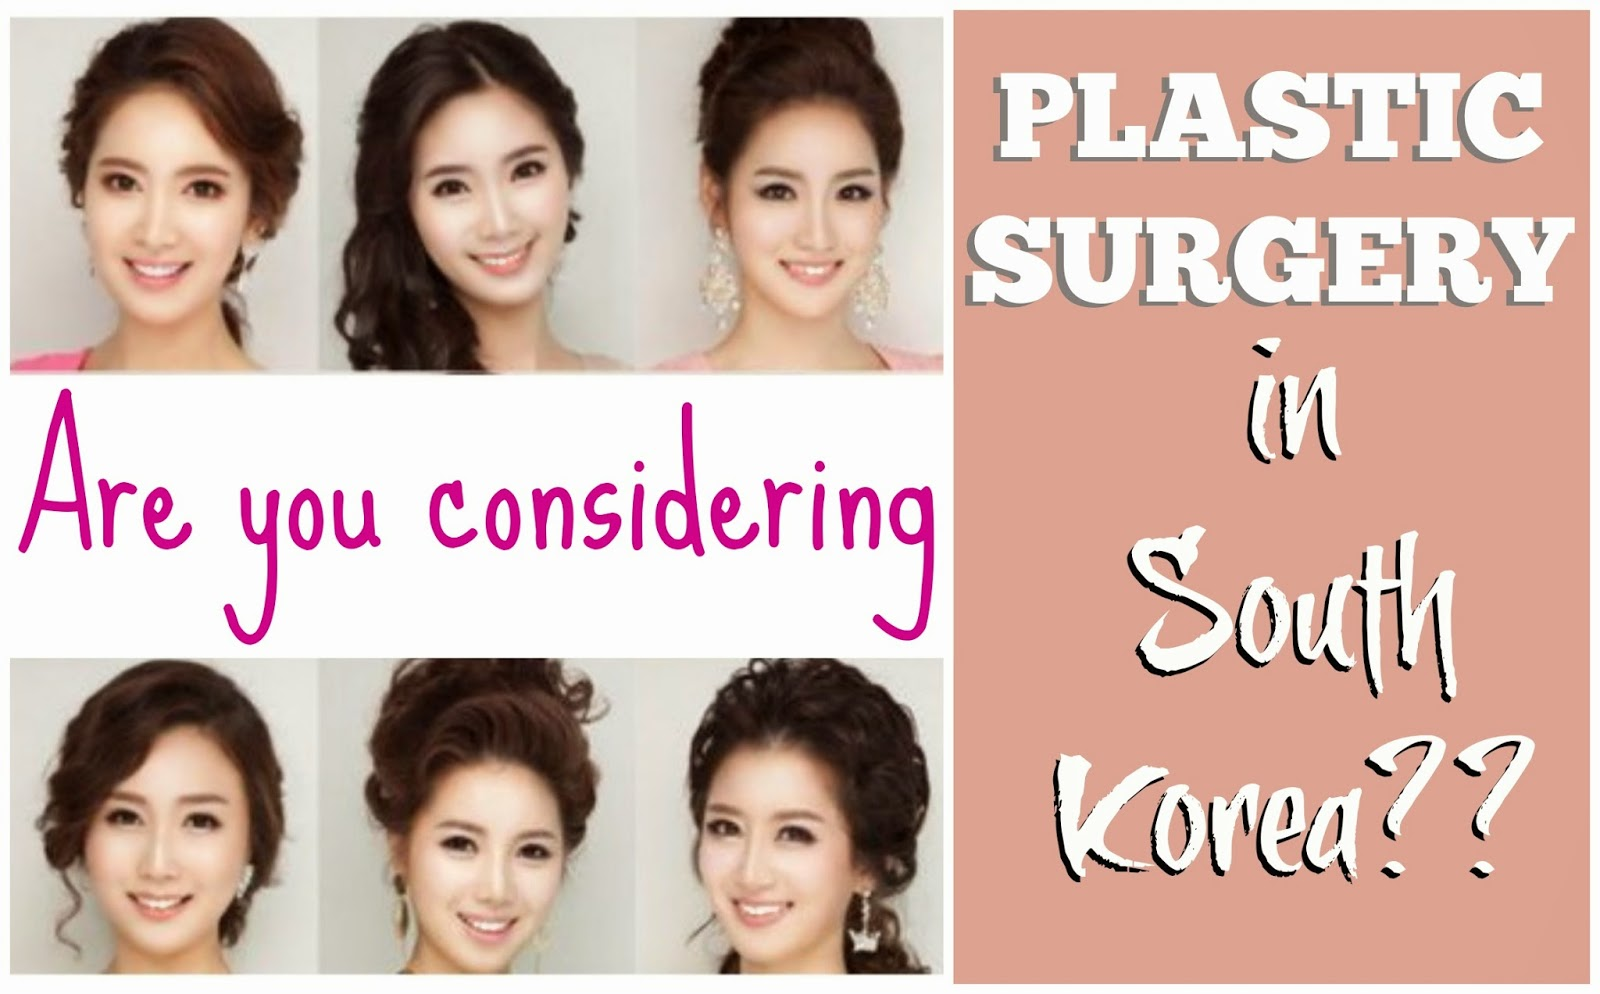 Captivating Are You Considering Plastic Surgery In South Korea?